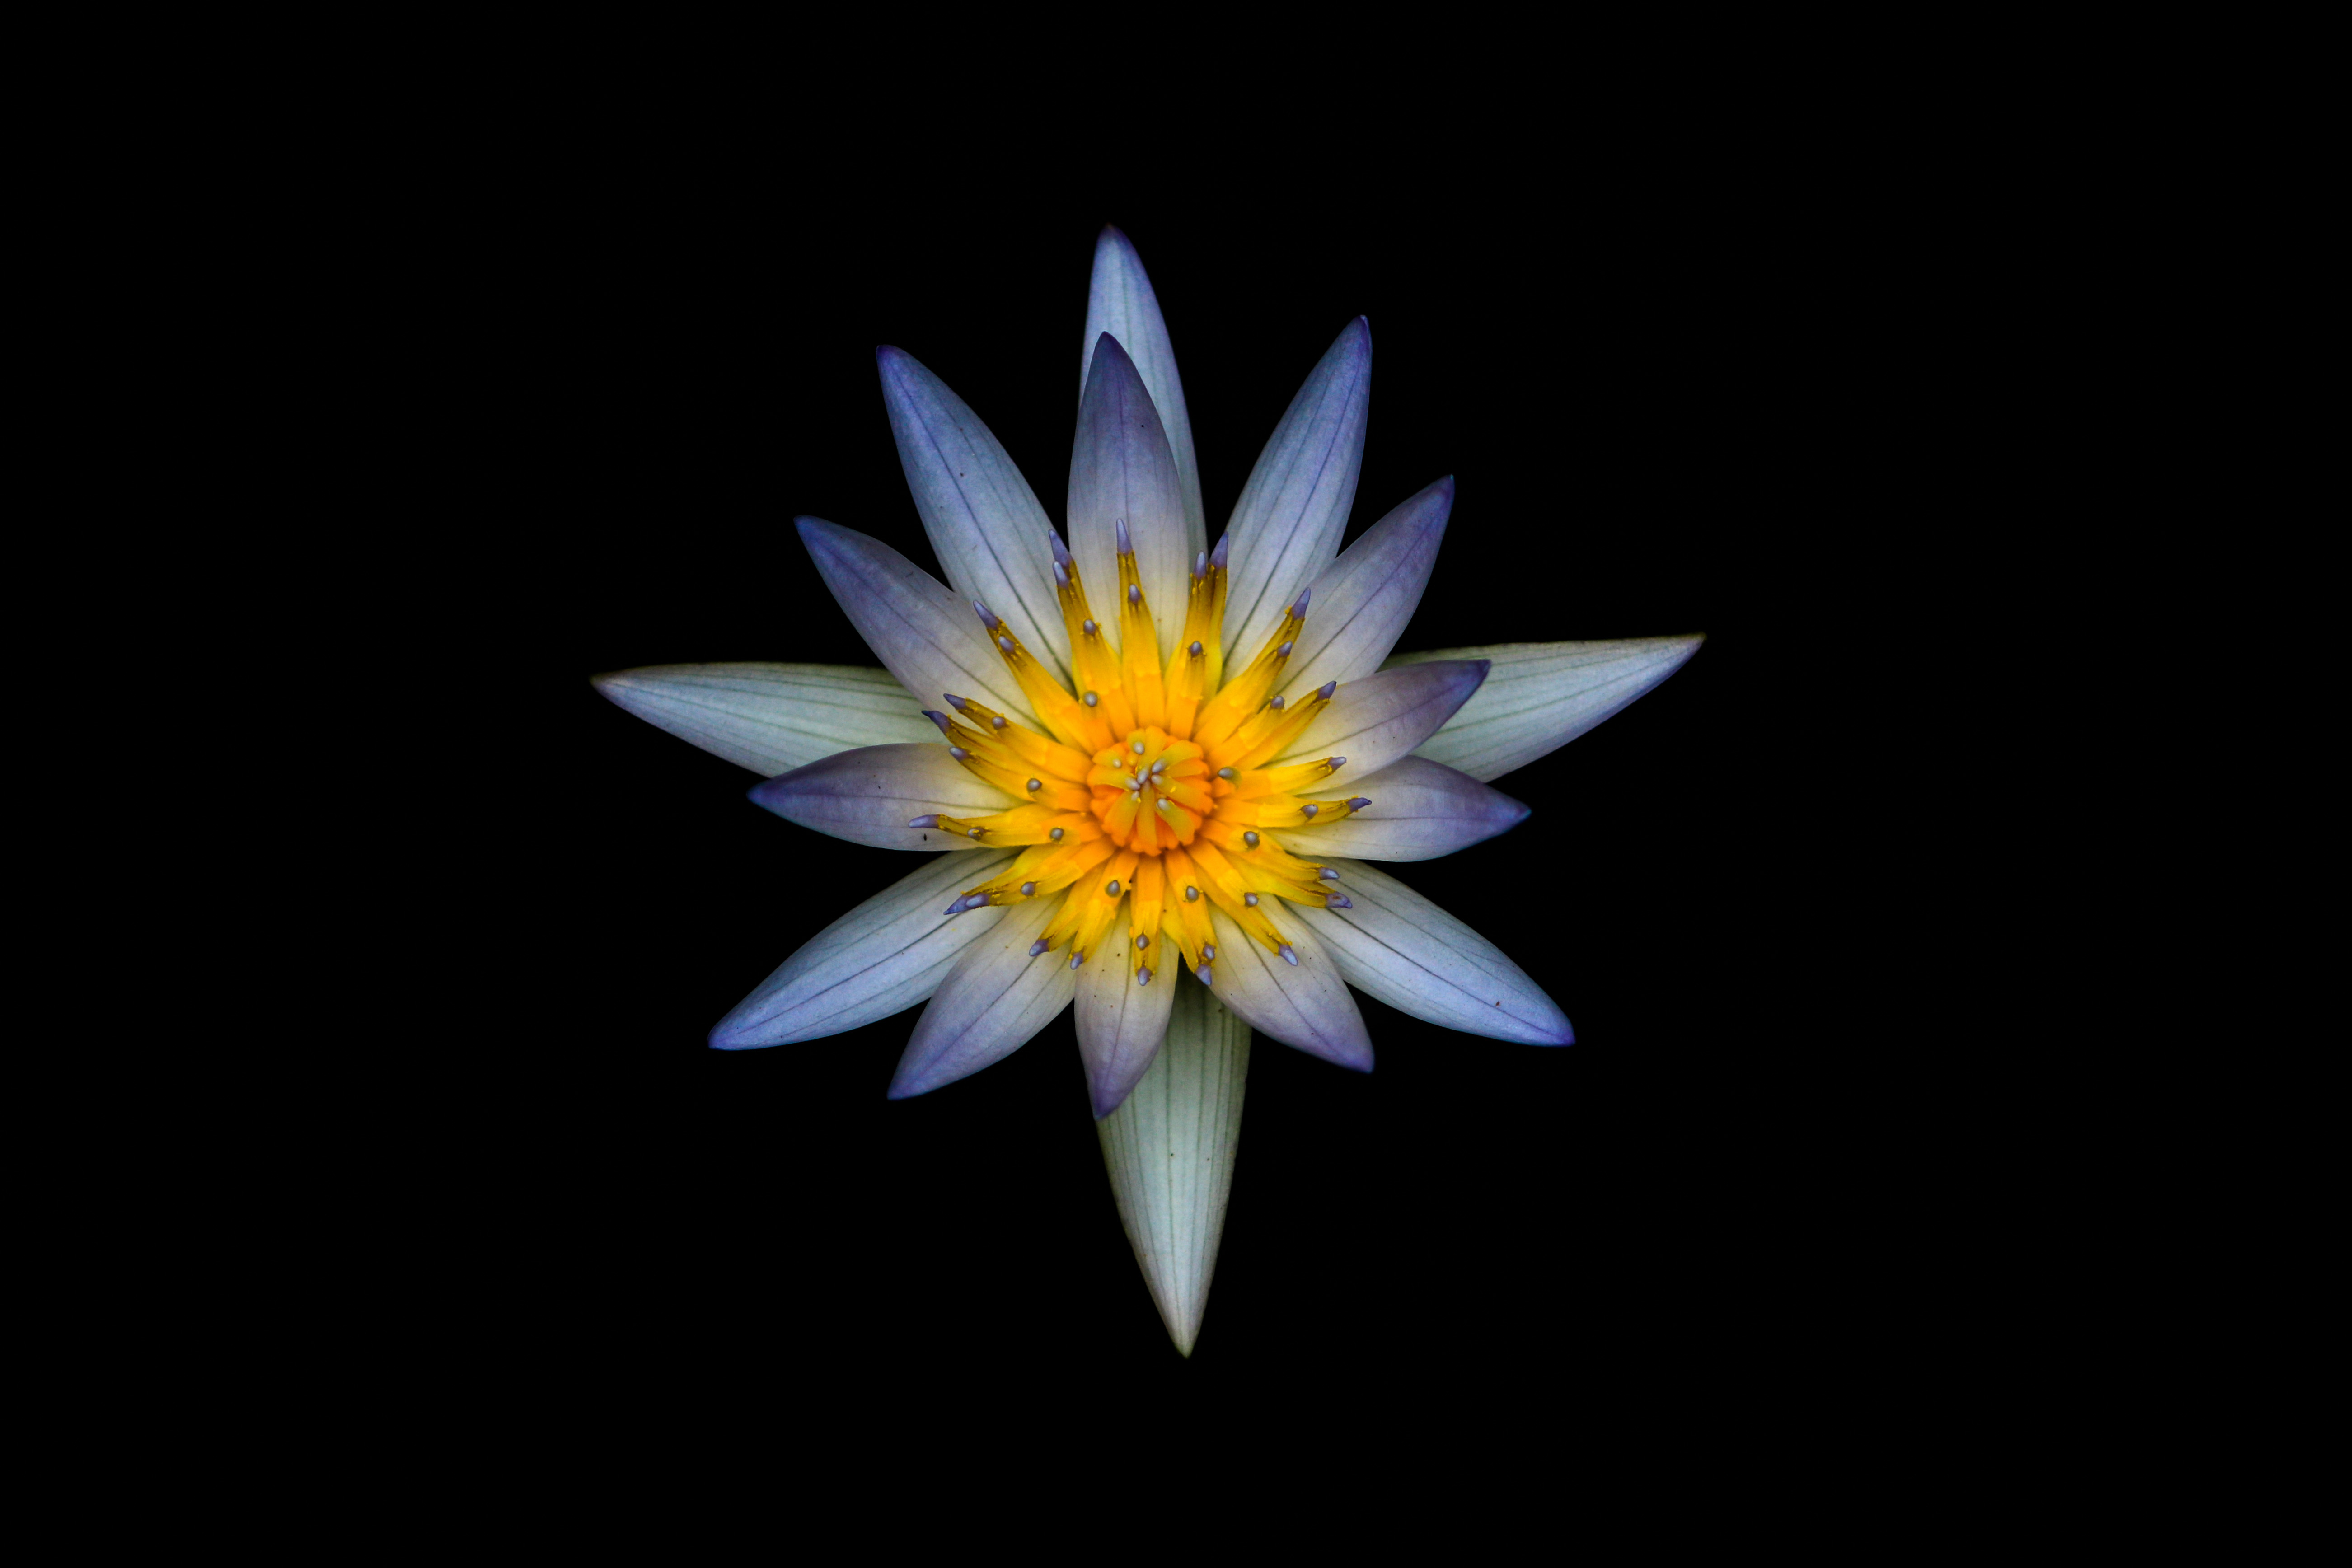 blue flower with yellow